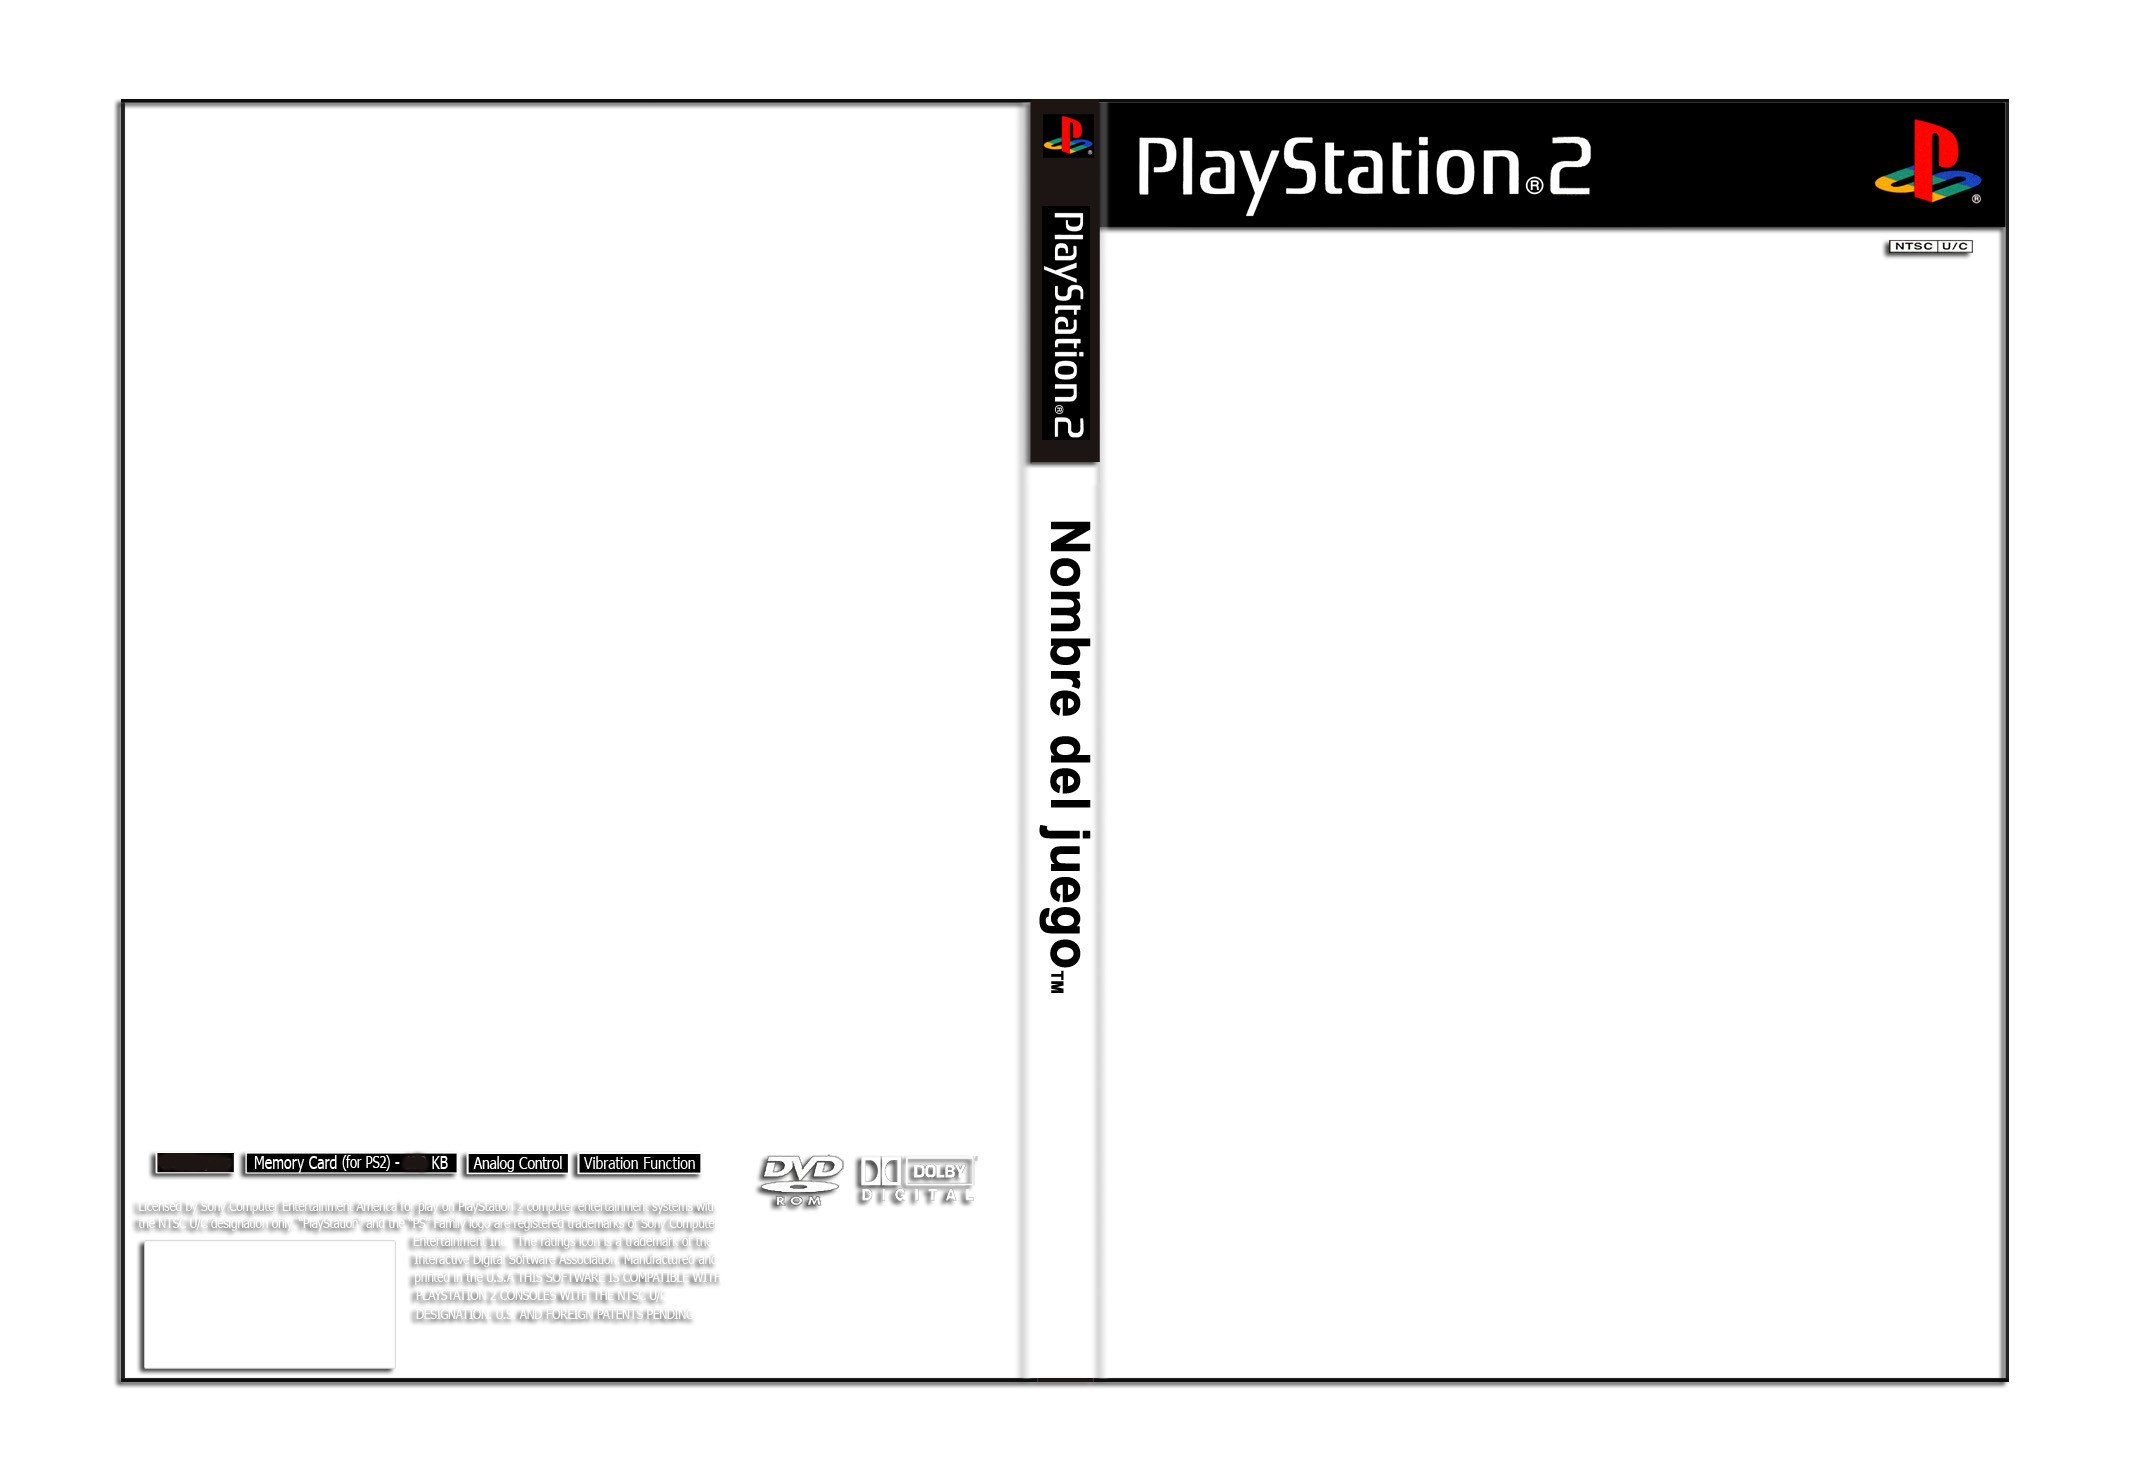 Ps2 Cover Template Template Playstation 2 Cover by Juanky On Deviantart